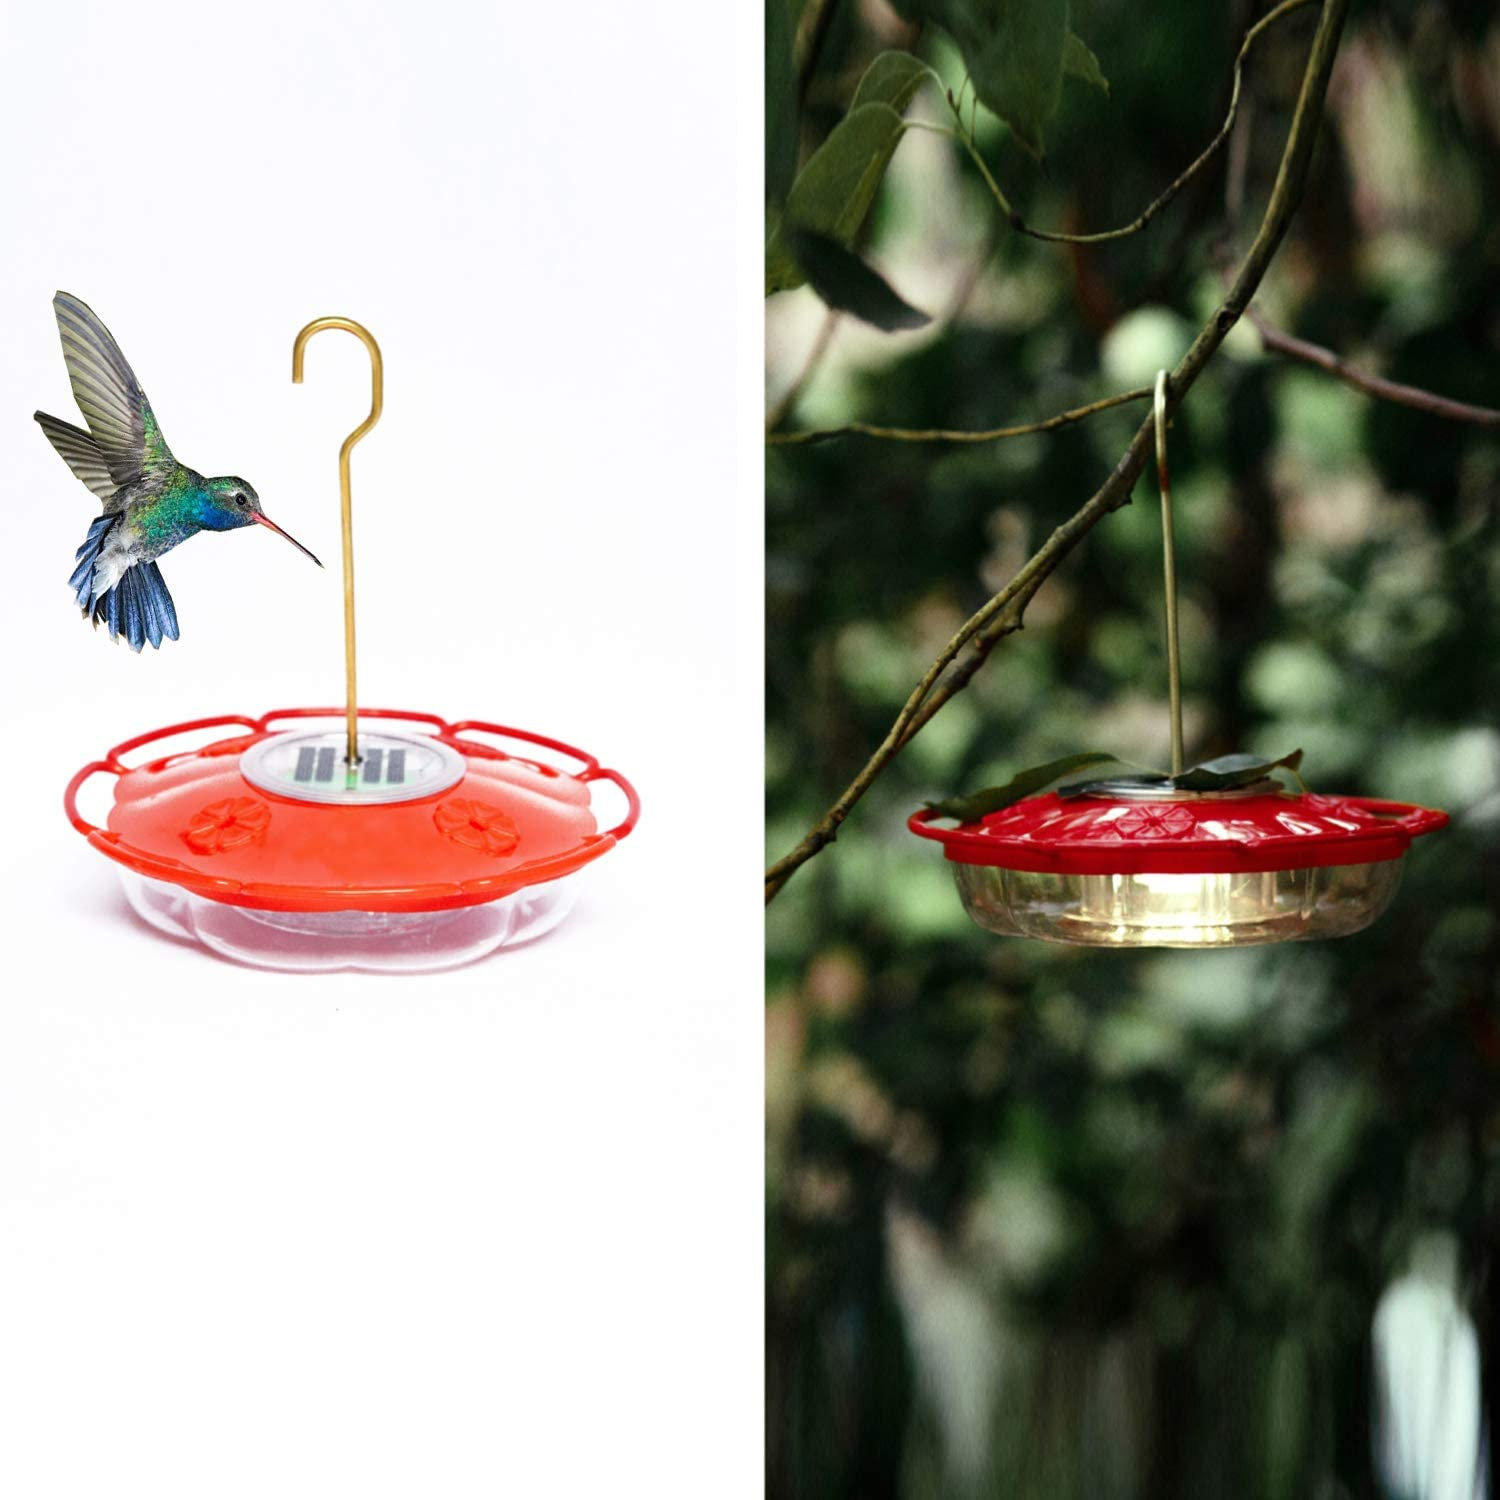 VOOKRY Hummingbird Feeder Window, Solar Hanging12 oz Flower Bird Feeder with 4 Feeding Stations for Outdoors